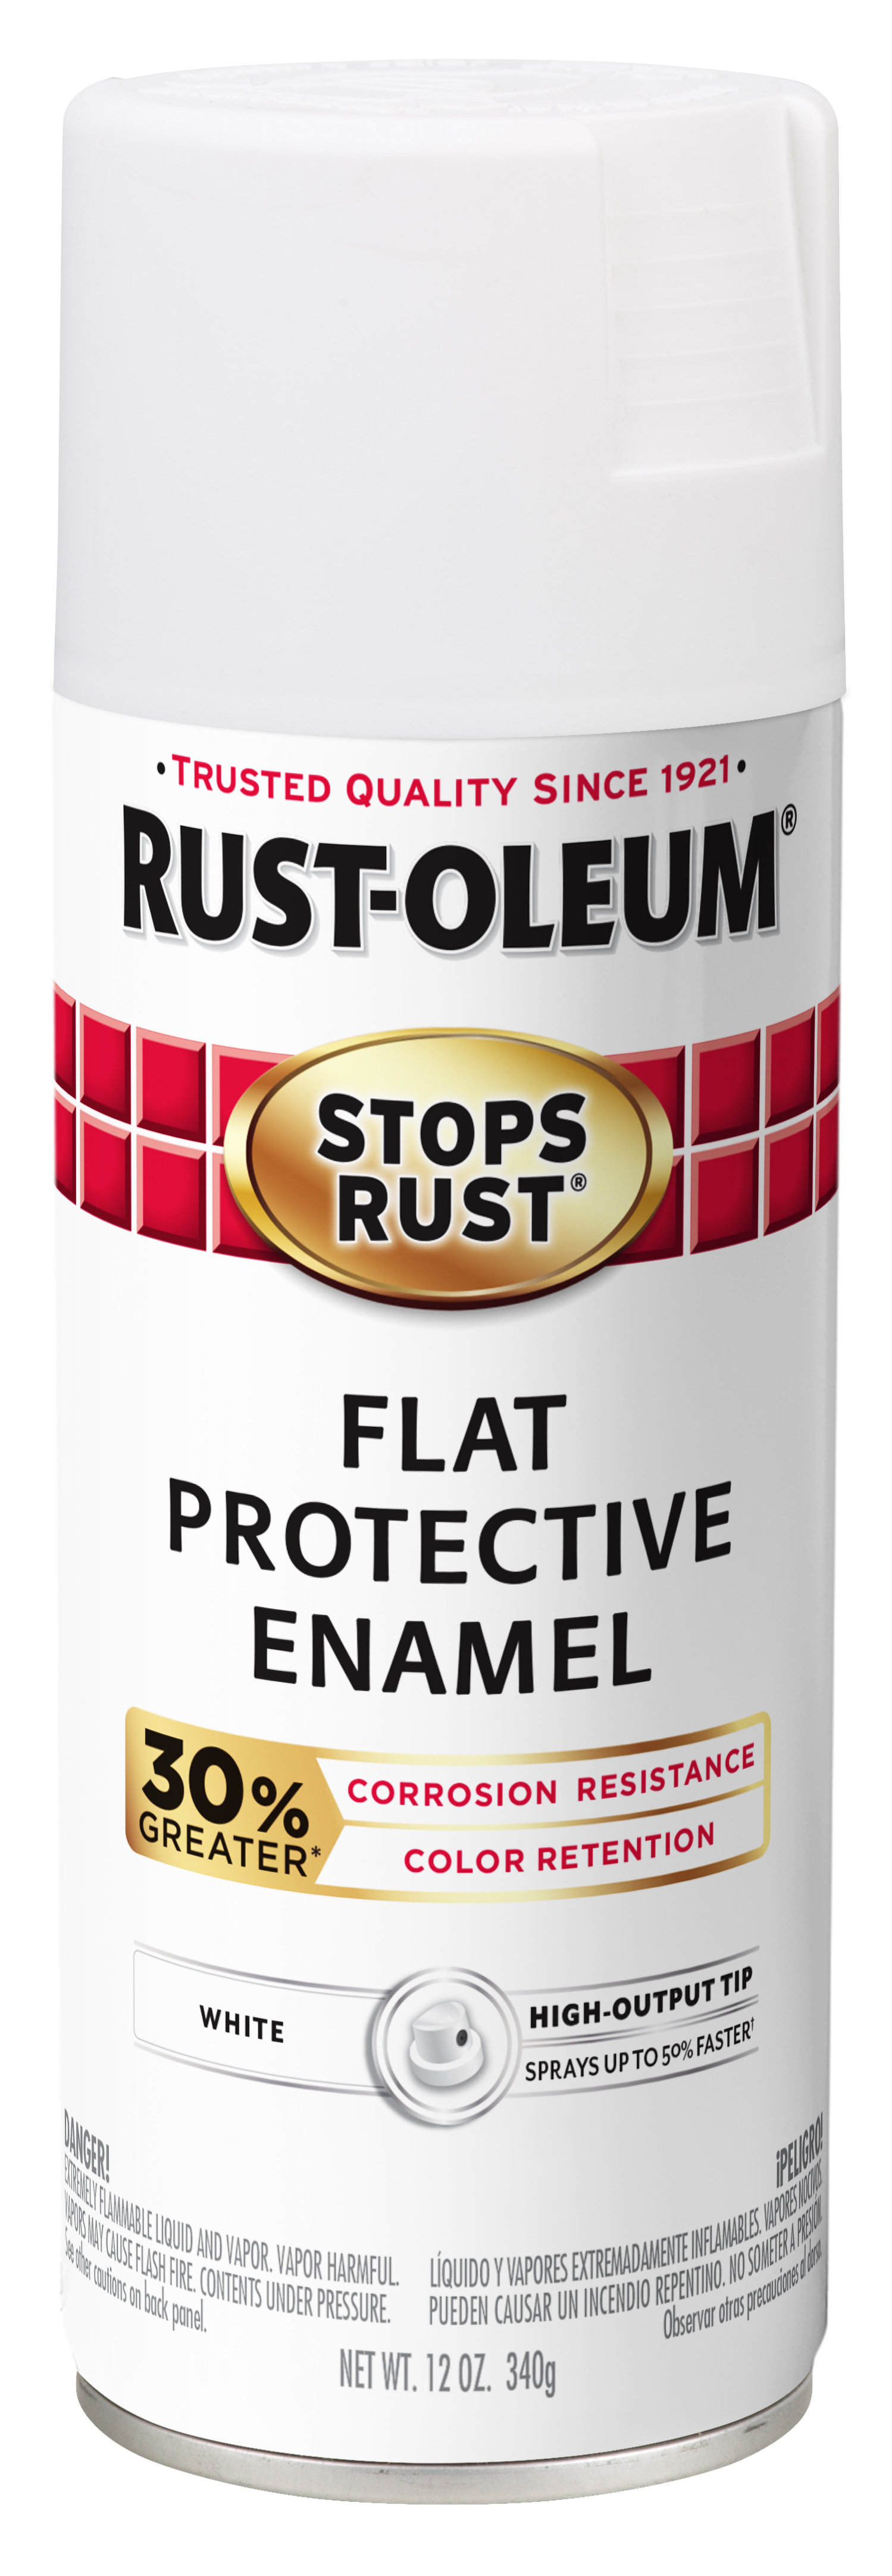 (3 Pack) Rust-Oleum Stops Rust Advanced Flat White Protective Enamel Spray Paint, 12 oz